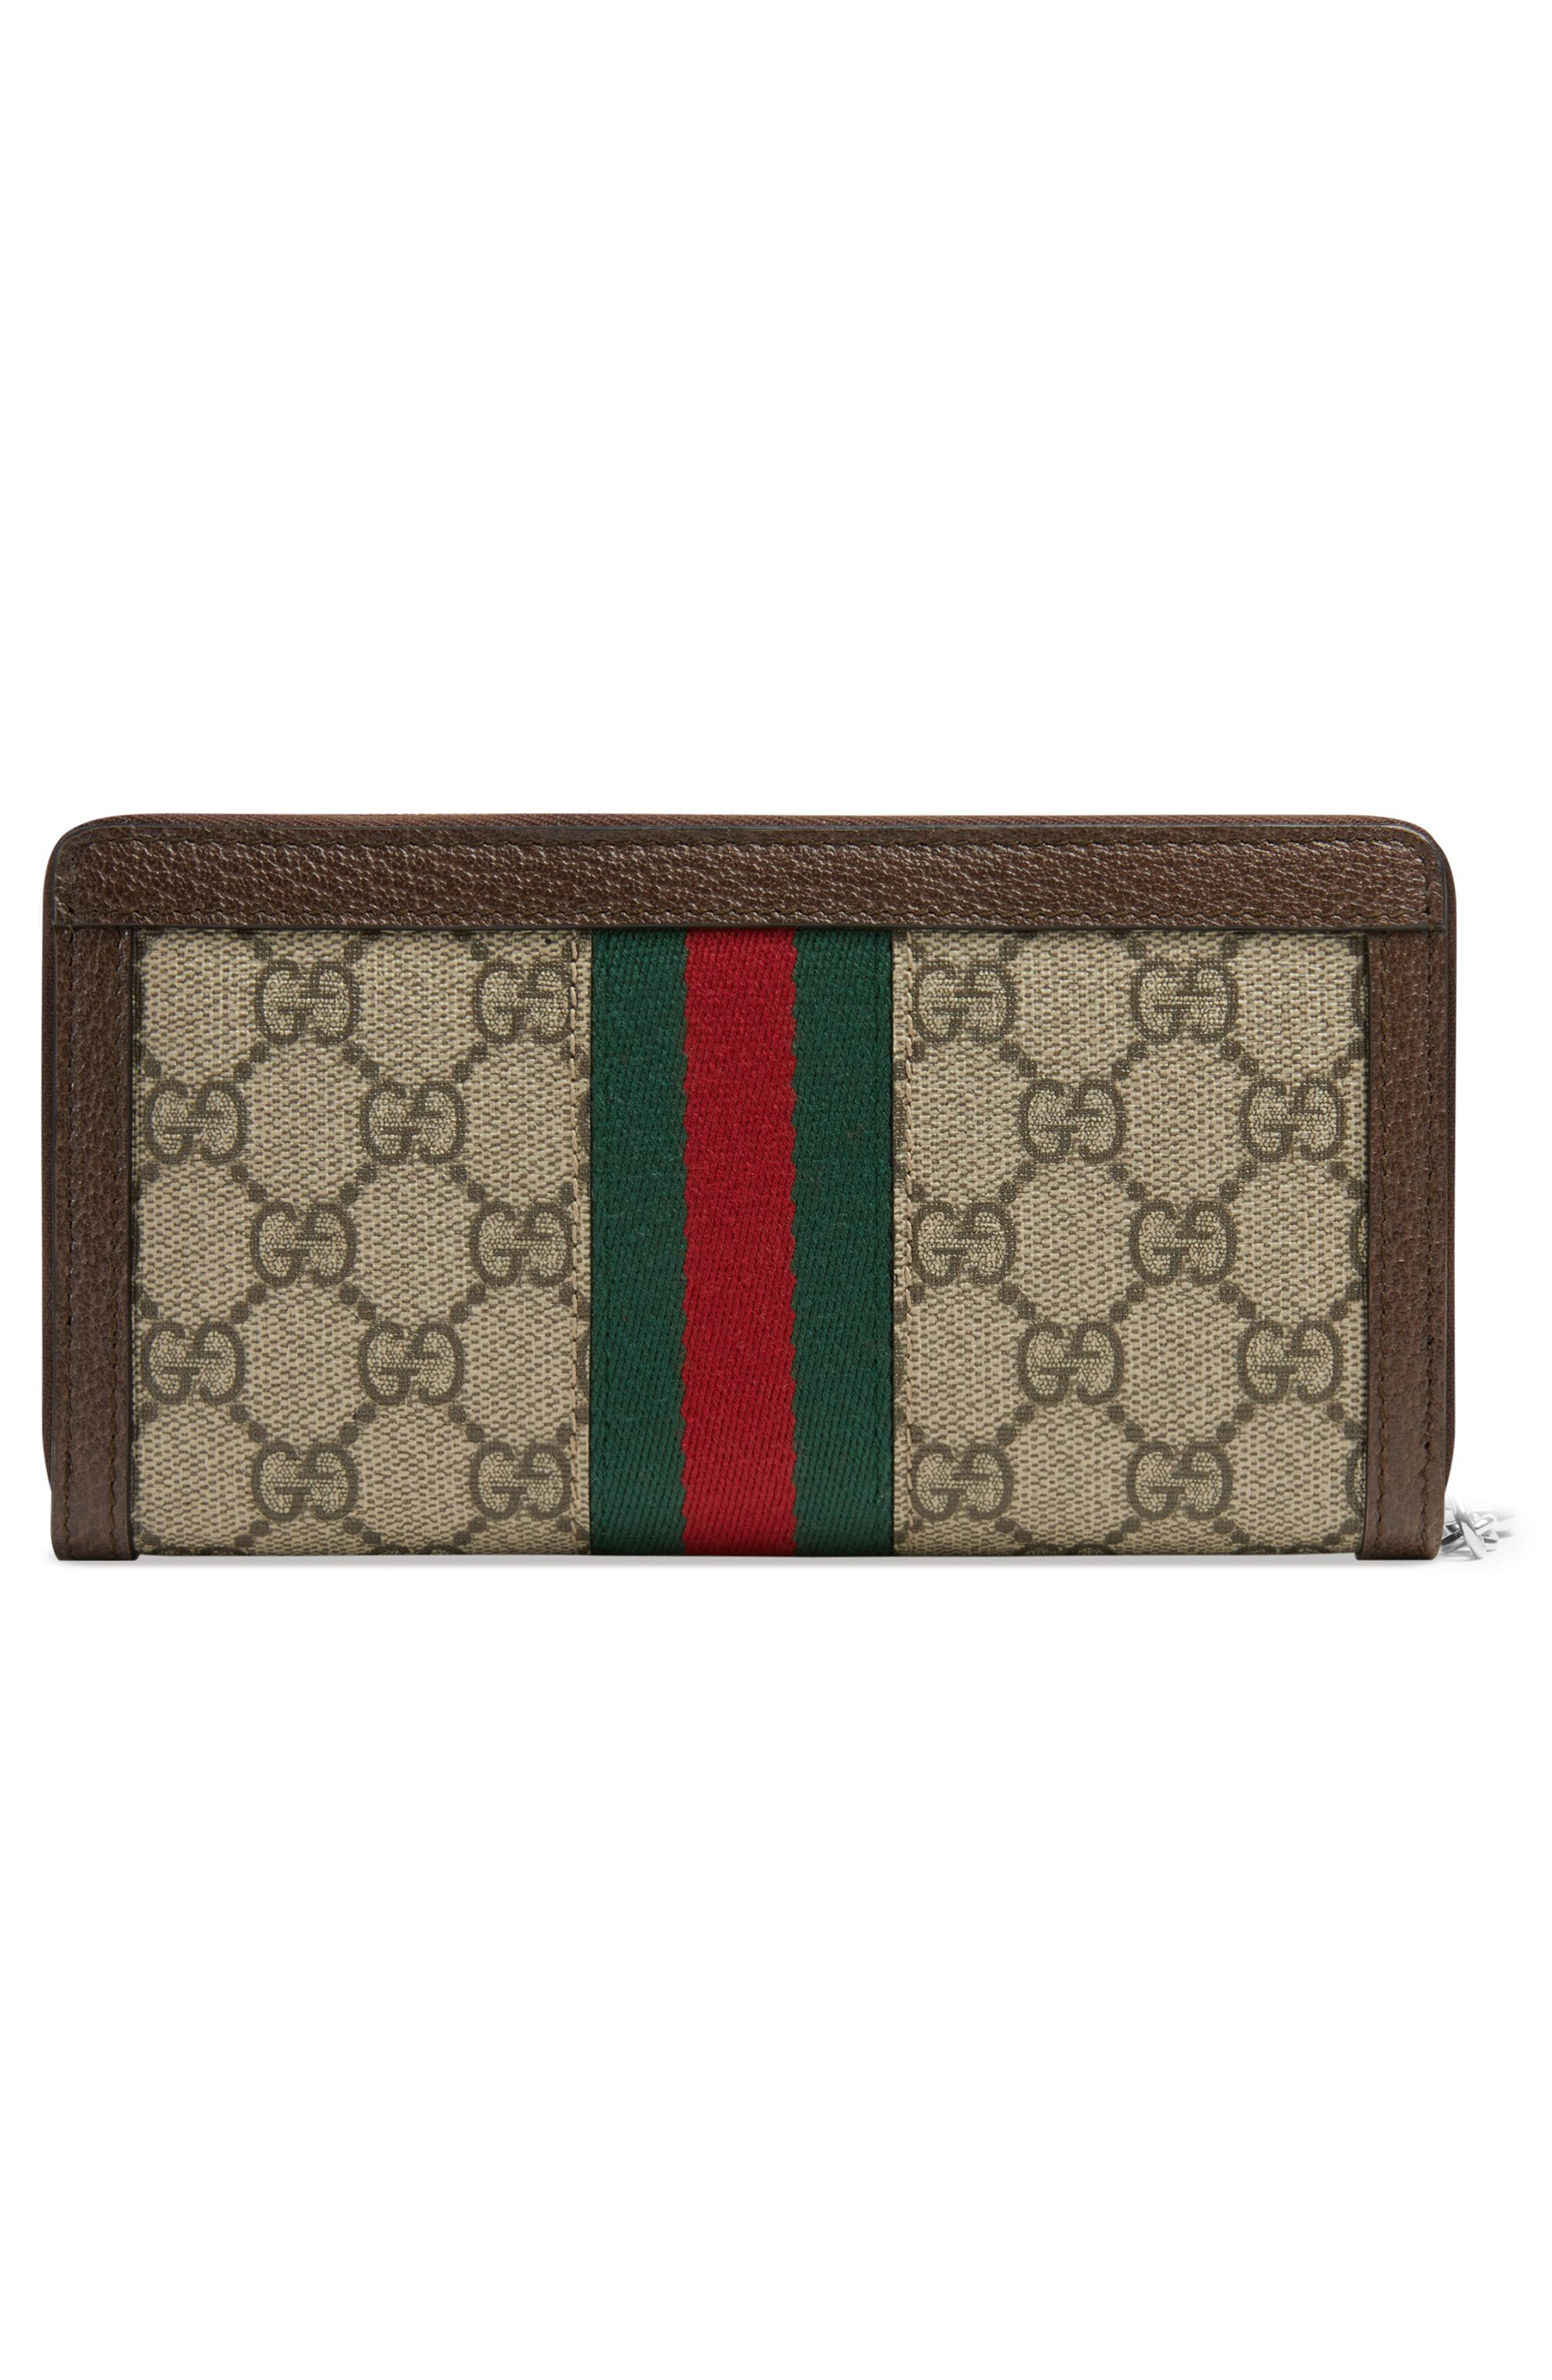 Ophidia GG Supreme Zip-Around Wallet,                             Alternate thumbnail 3, color,                             Beige Ebony/ Acero/ Vert Red